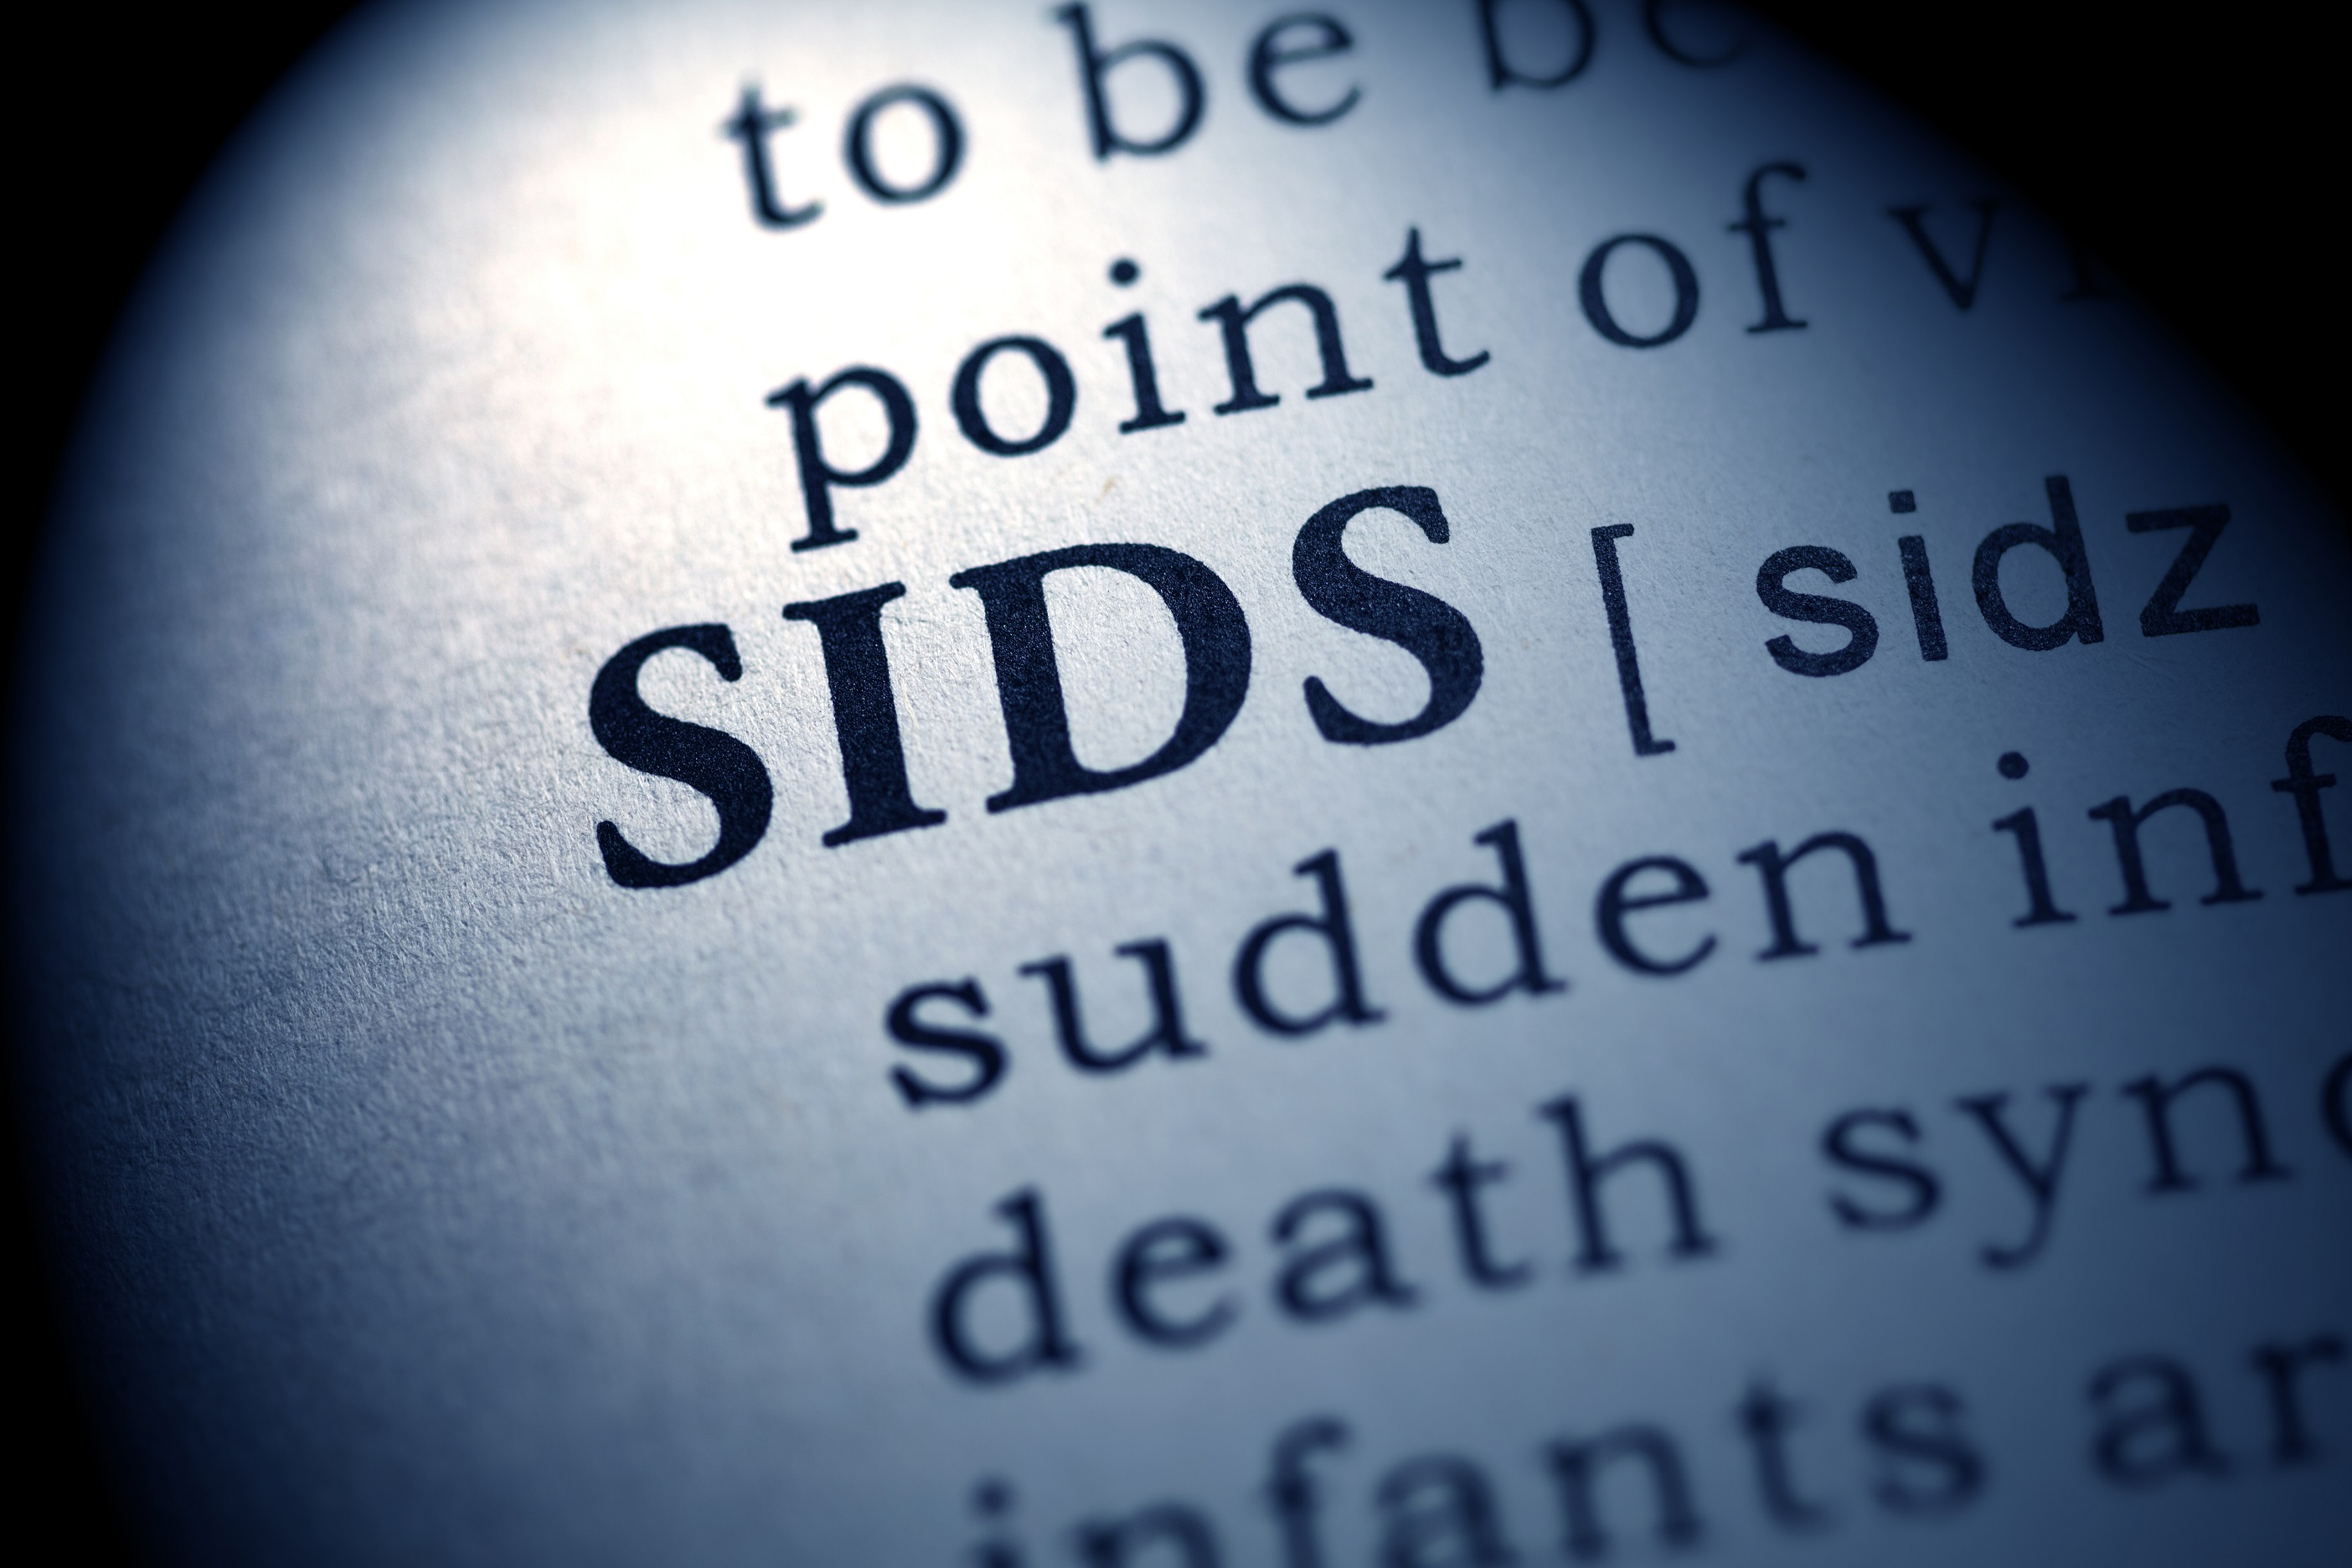 a study of sudden infant death syndrome or sids Sudden infant death syndrome (sids) is the sudden and unexpected death of   sids remains unpredictable with an unknown cause despite years of research.